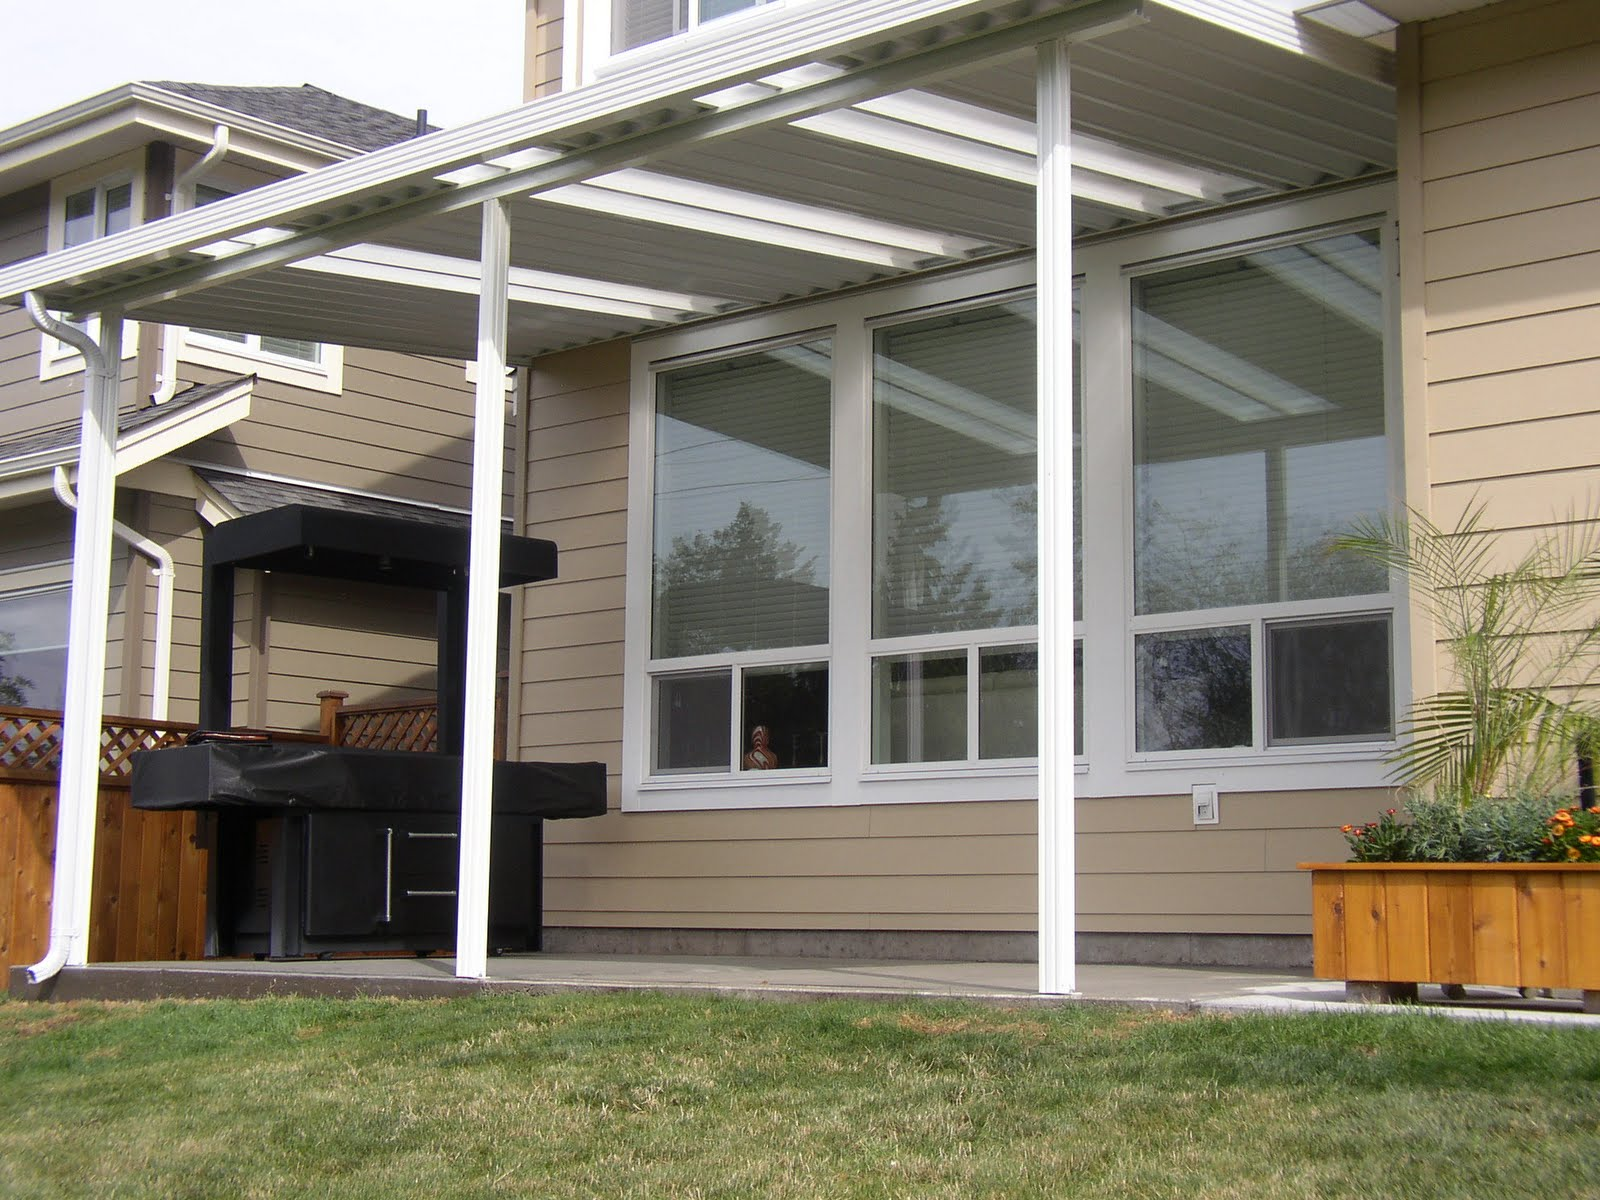 Canvas and Deck Awnings for Home, Outside and House Awnings